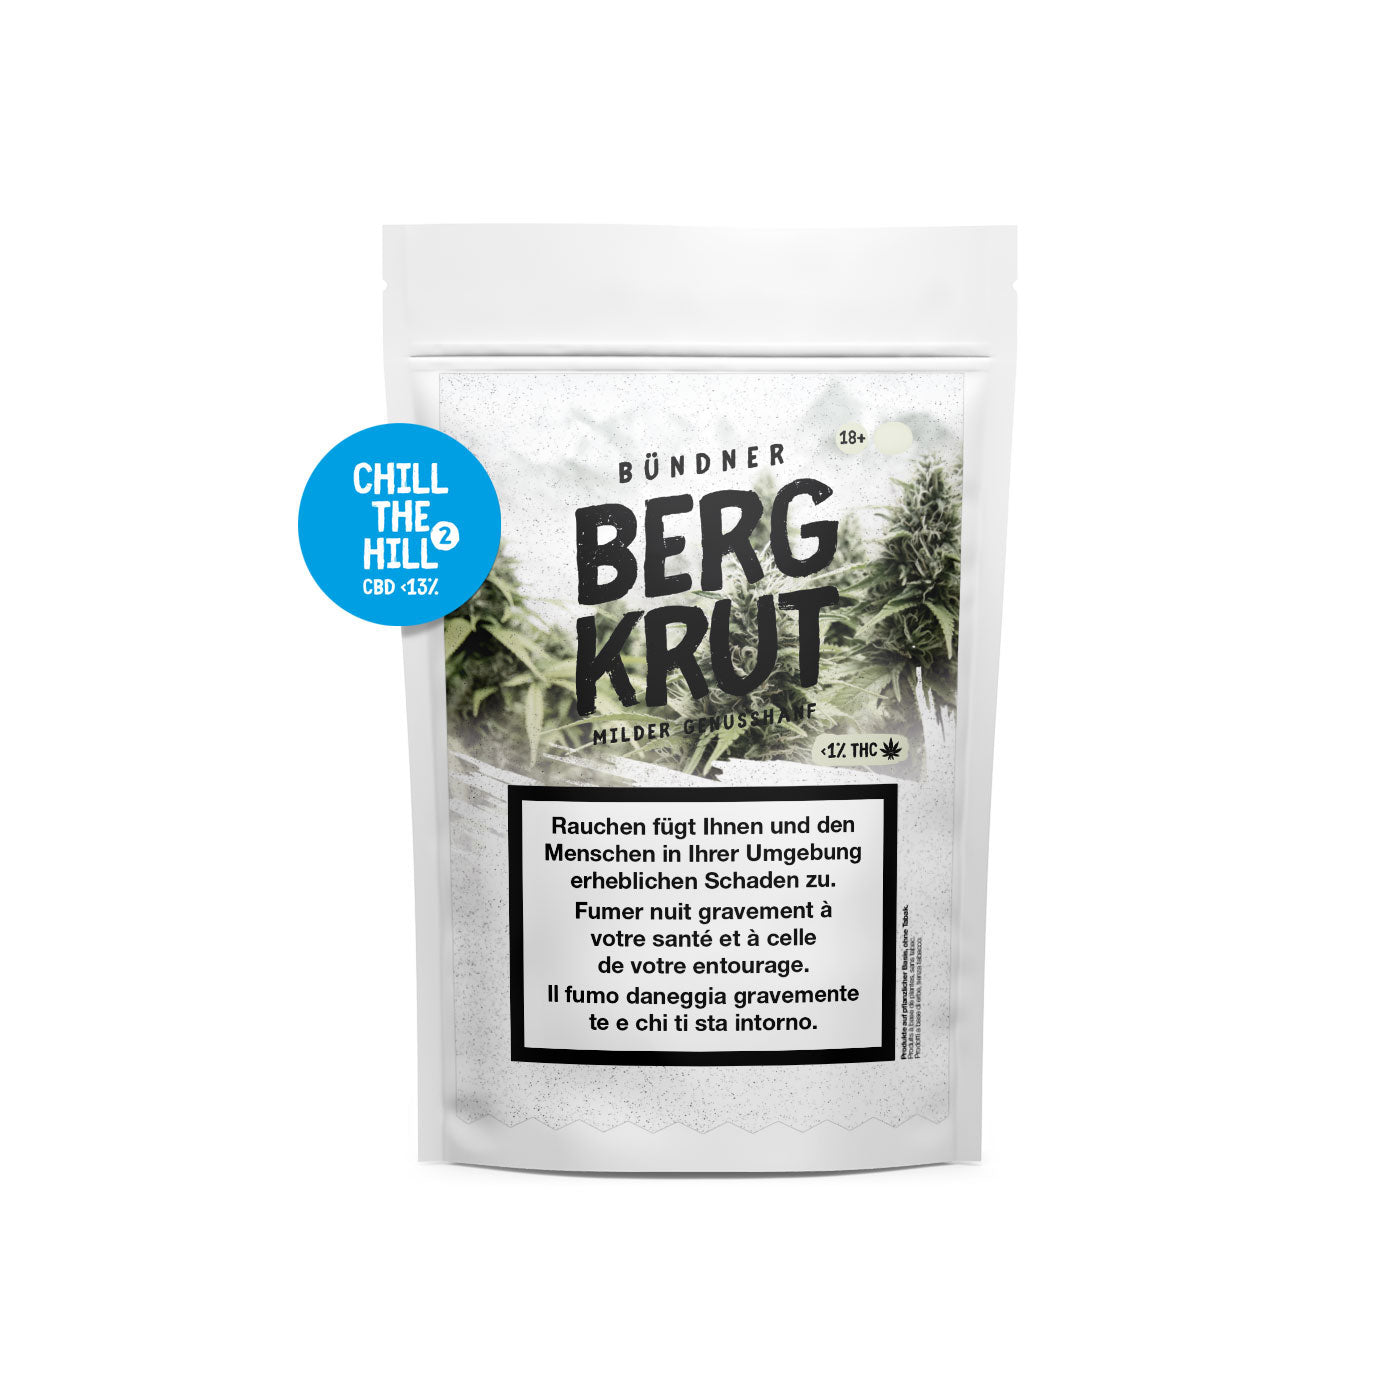 Chill the Hill 2 | Bergkrut | CBD Cannabis | uWeed | Swiss CBD Shop | Buy Online Shop CBD Switzerland